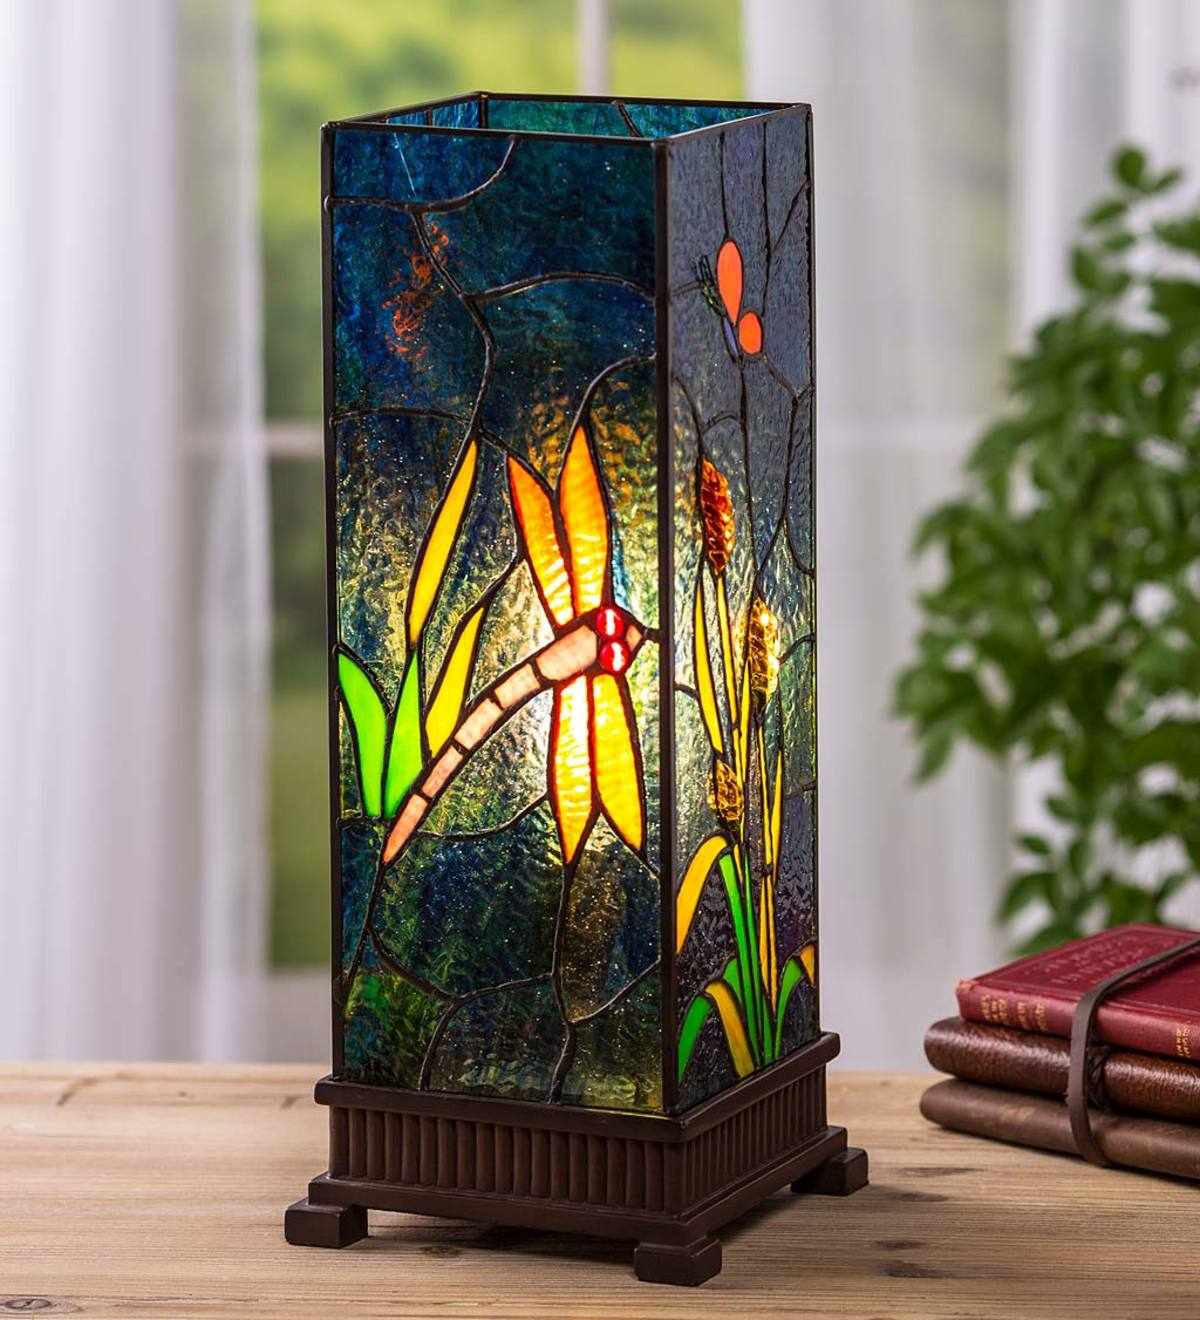 Stained Glass Dragonfly Lamp with Craftsman-Style Wood Base